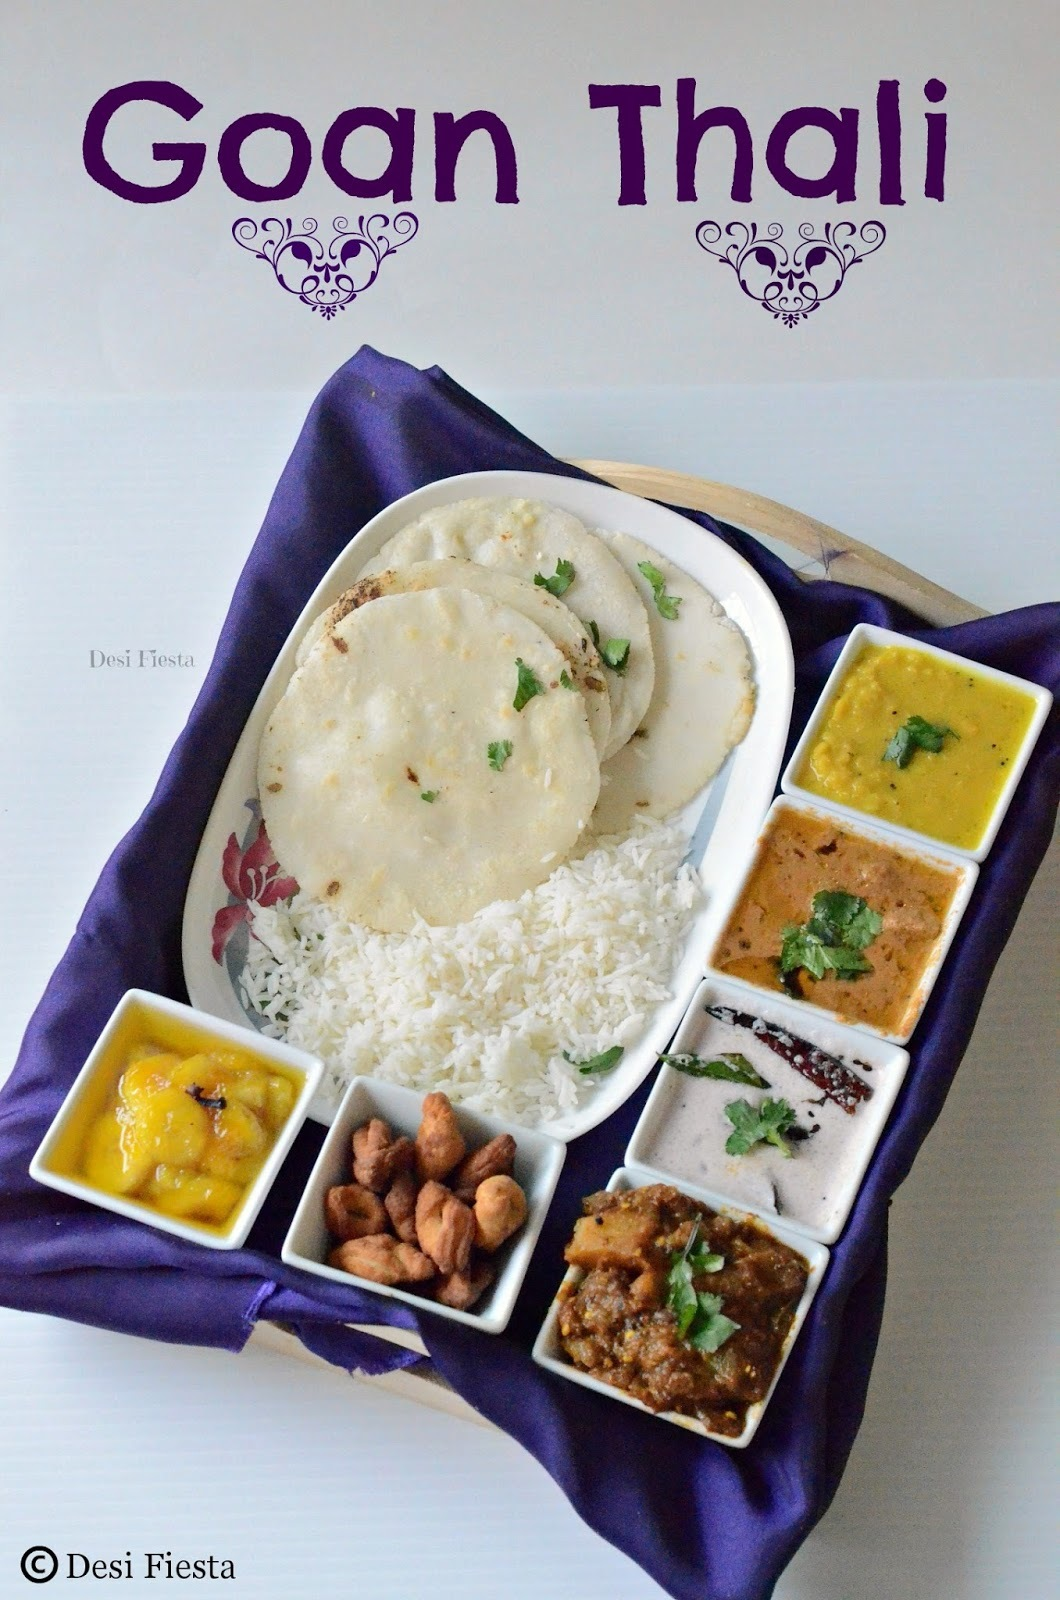 Goan Thali - A simple Goan Lunch Menu